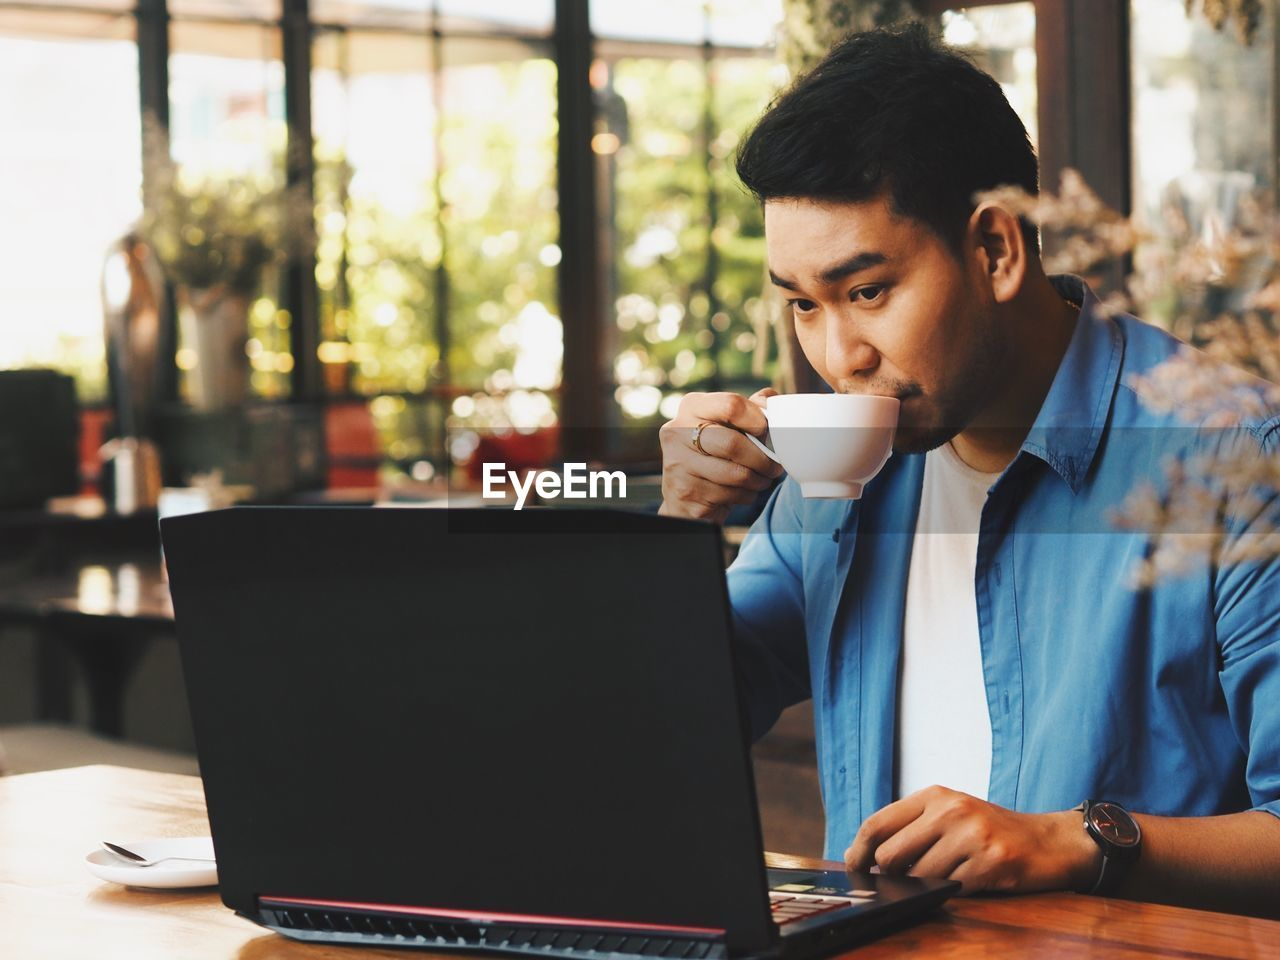 Young man drinking coffee while using laptop from table